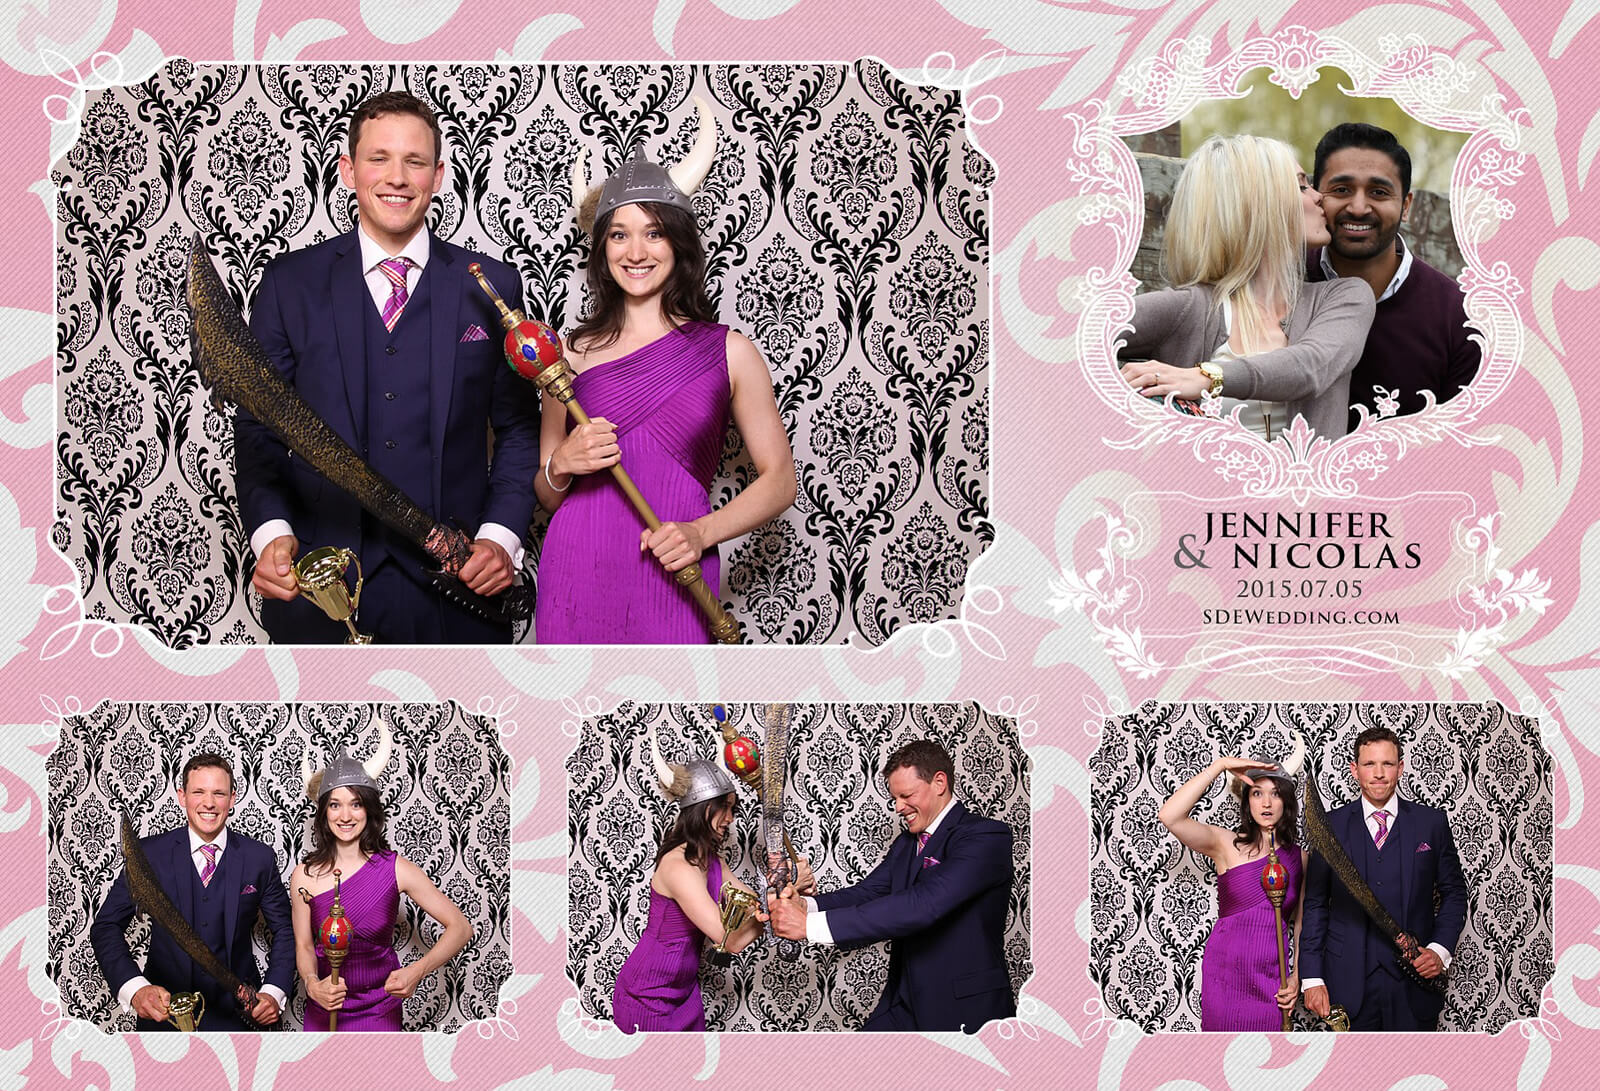 Toronto Liberty Grand Wedding Reception Photo Booth Rental 6